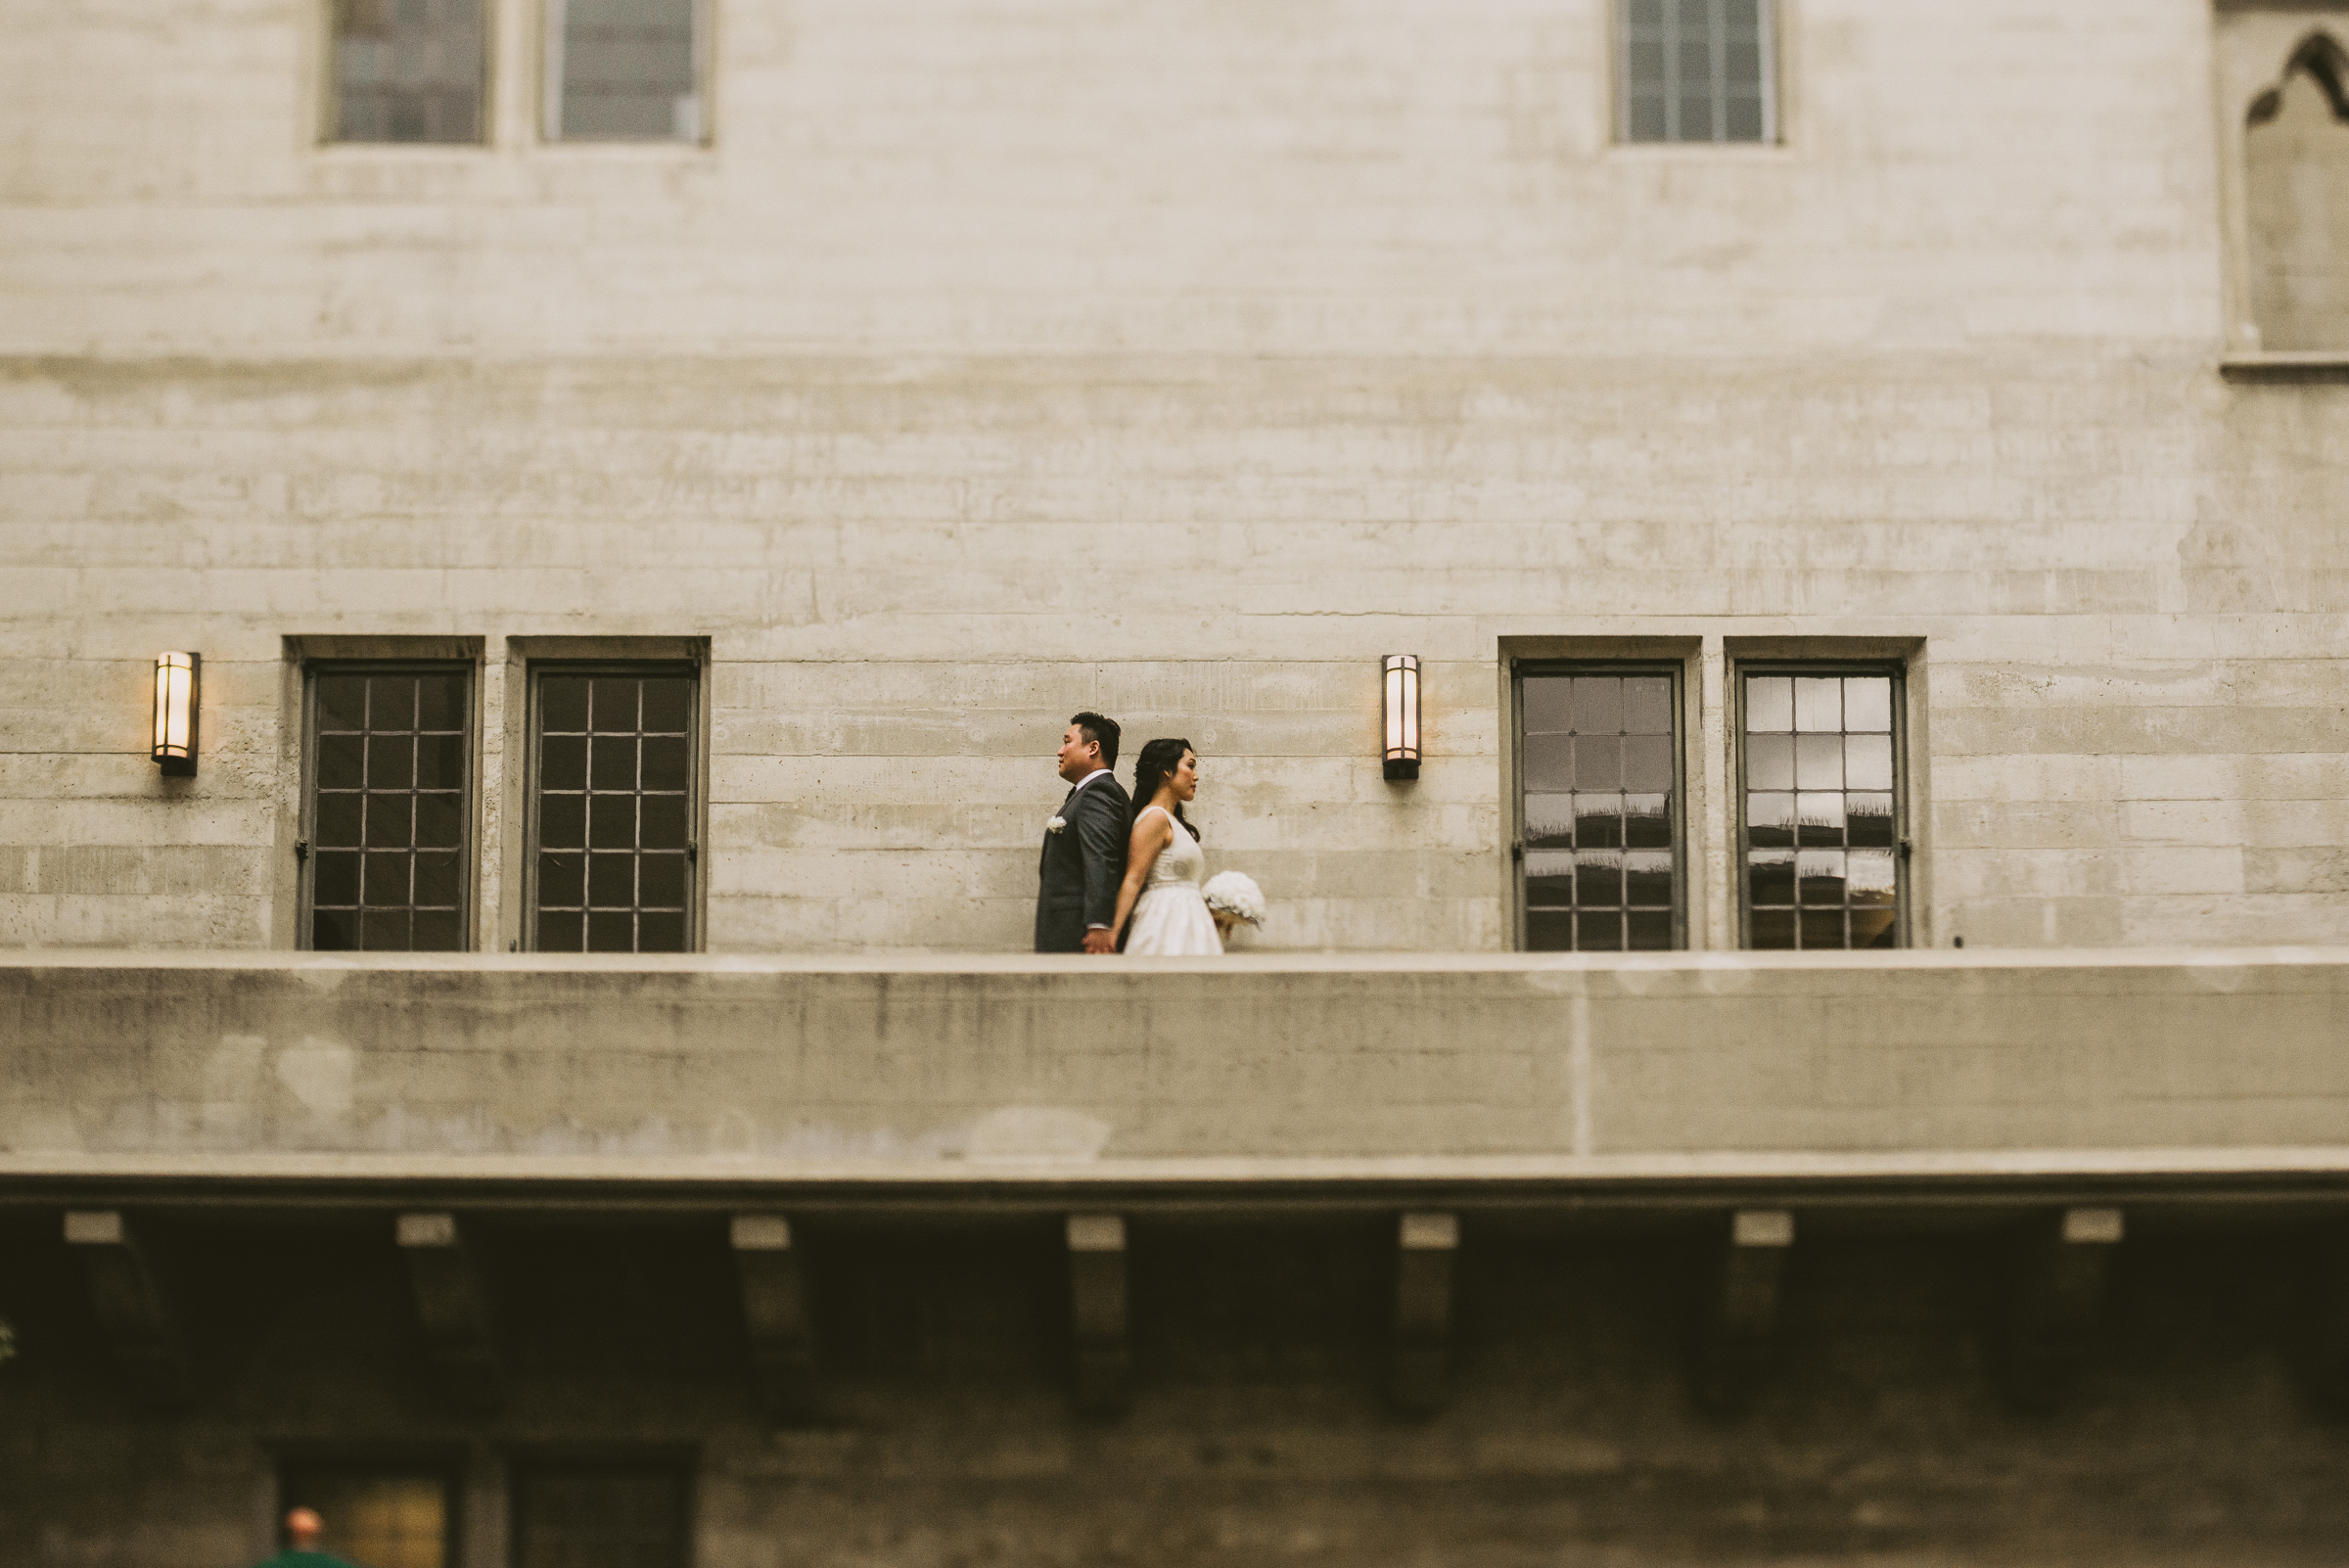 ©Isaiah + Taylor Photography - David + Grace - Wedding - 20170115 08080.jpg